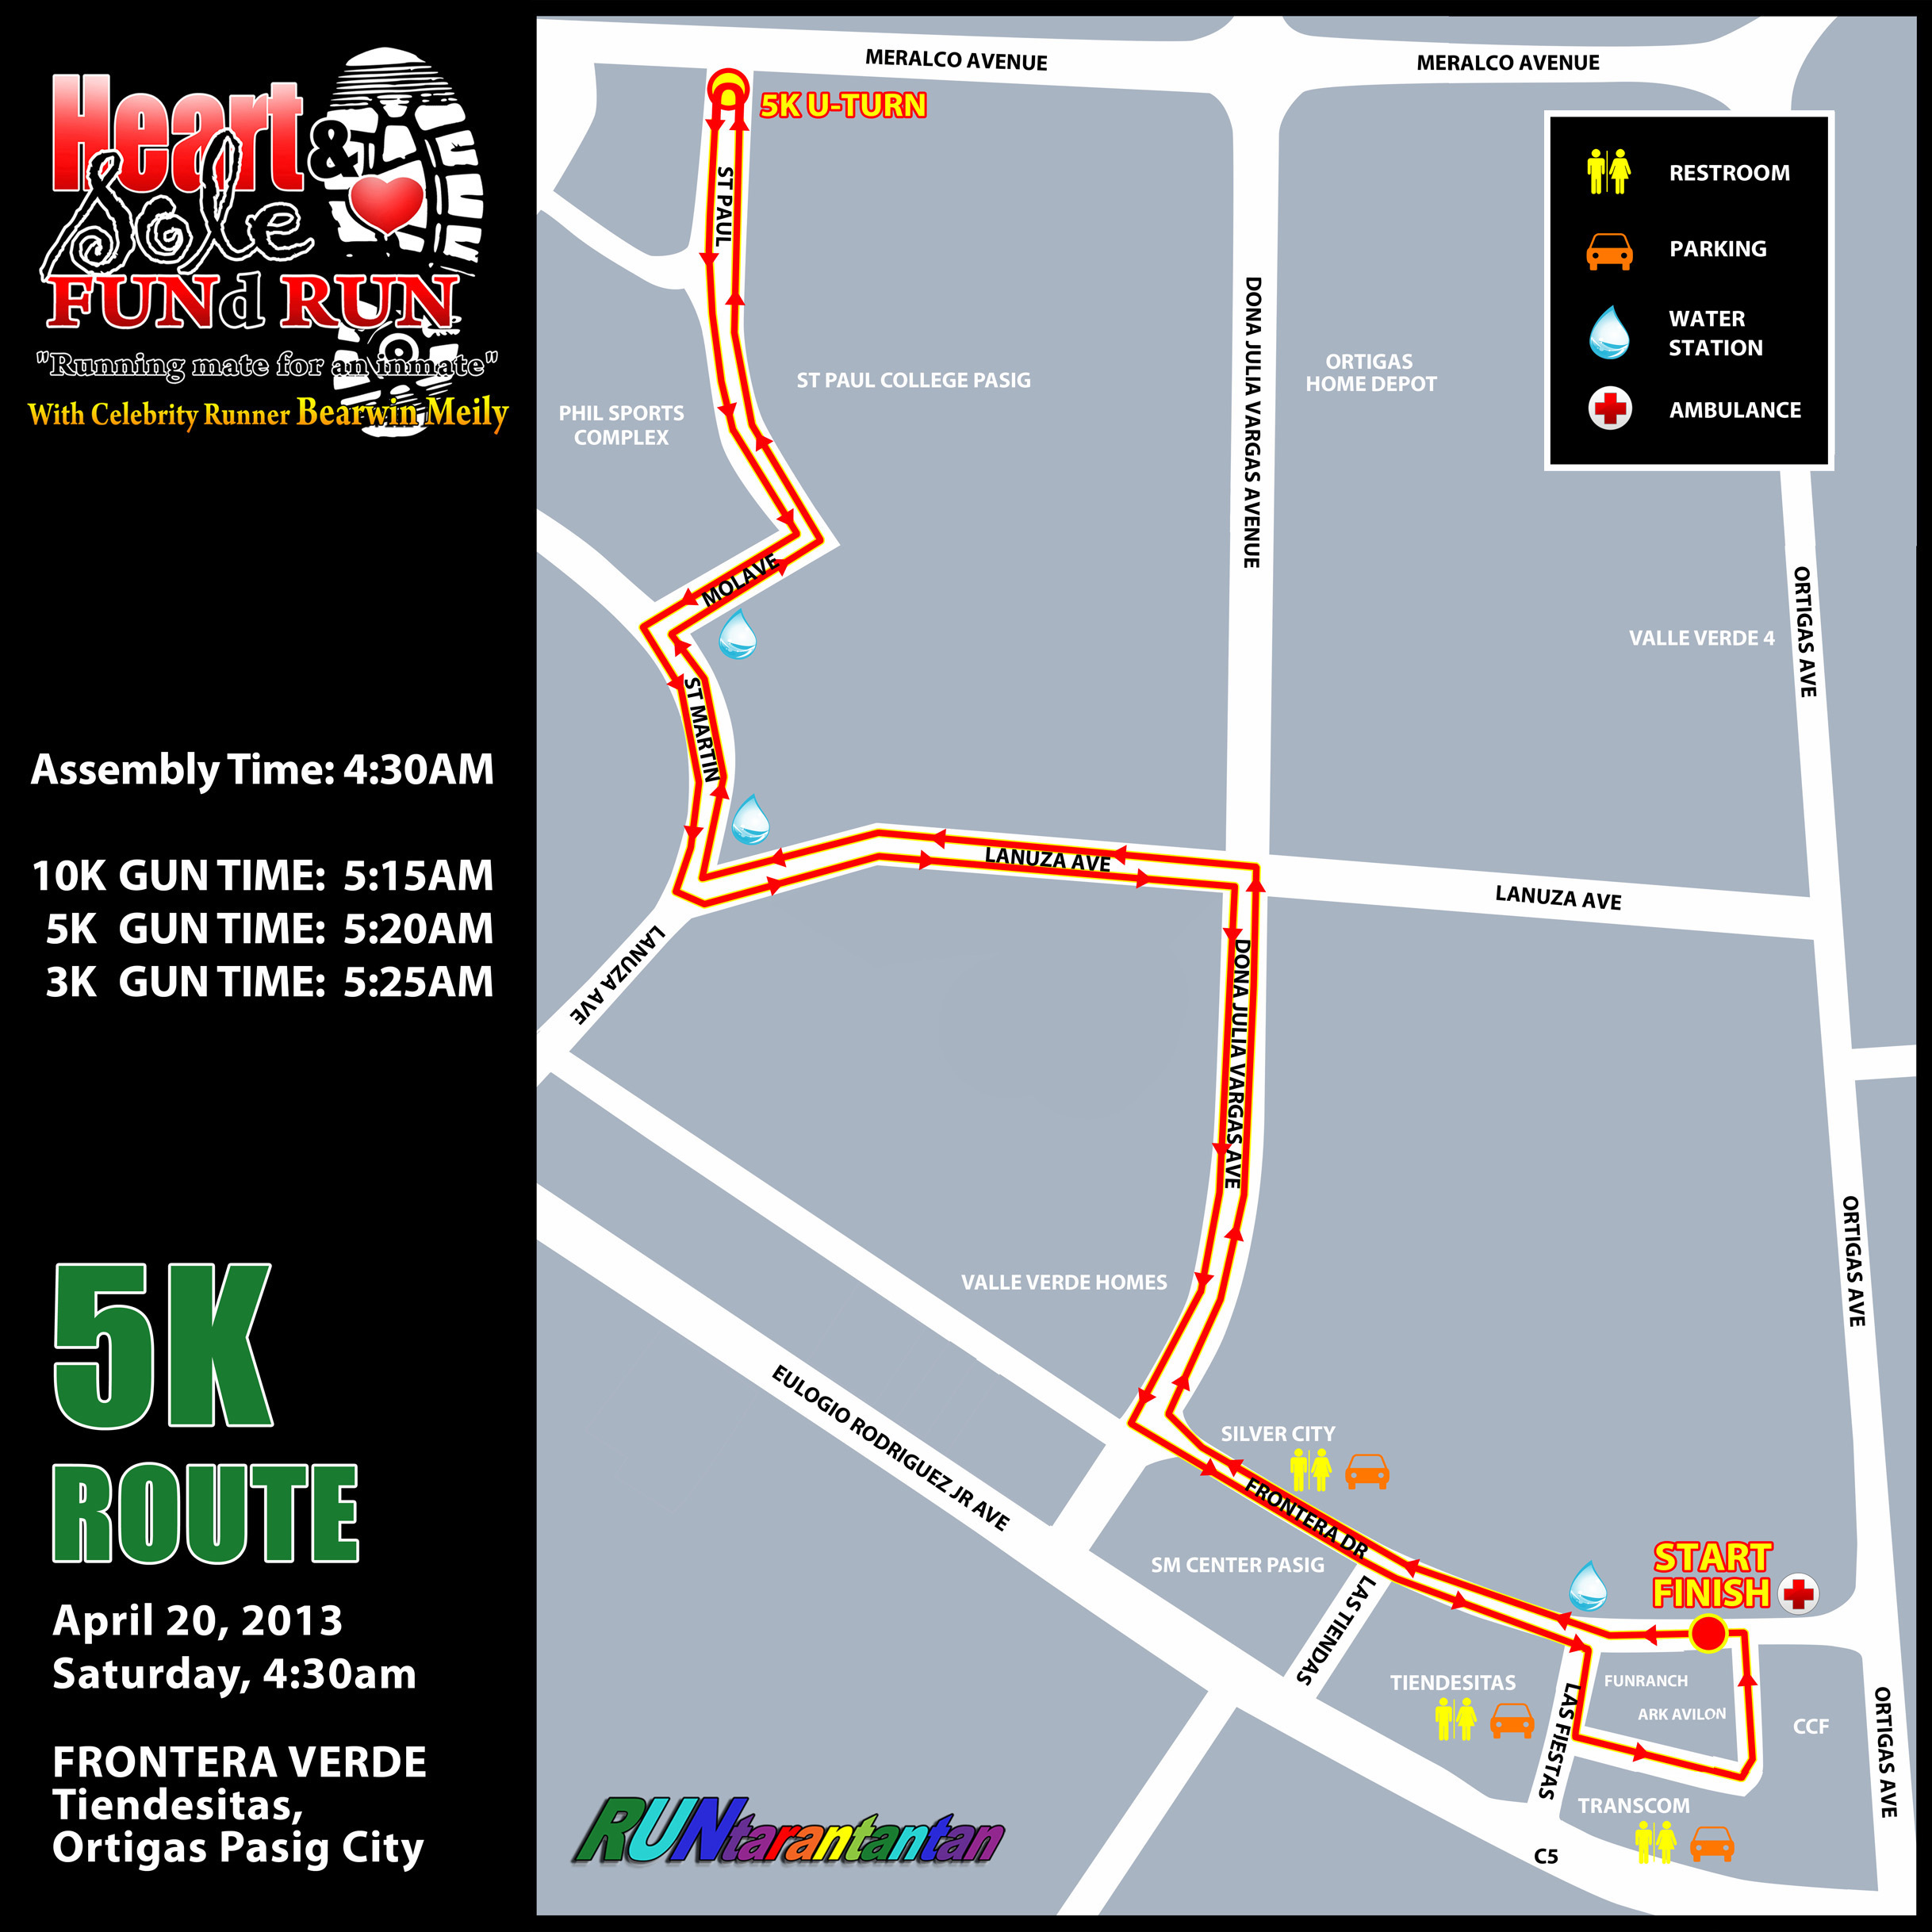 heart-and-sole-fund-run-2013-route-map-5k